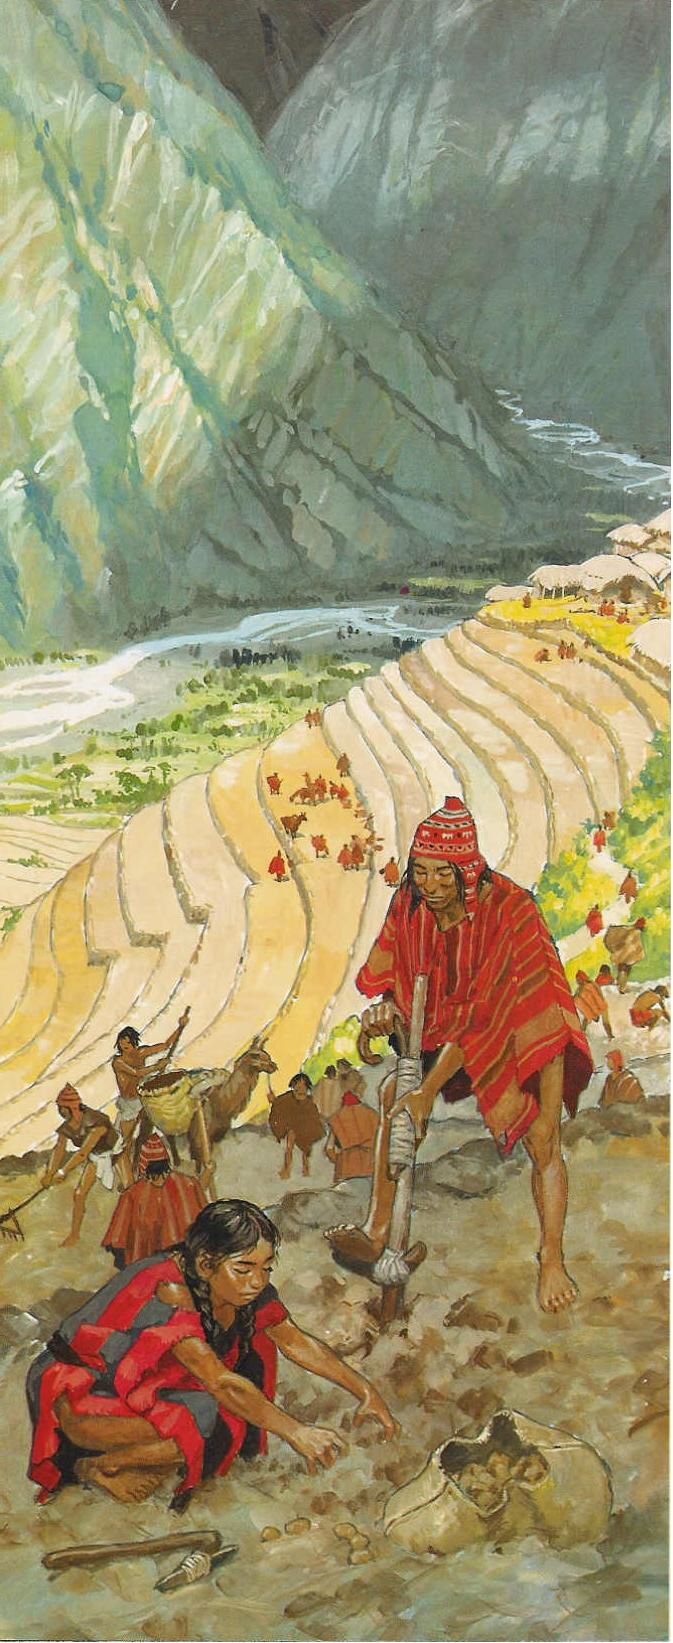 Incan terraces. After building the terrace's shape, the Incas then constructed systems of canals and aqueducts to provide the terraces with constant water, increasing the land's fertility. The ancient Incan's terracing techniques were so successful that modern Peruvian farmers still employ them in their farms today.